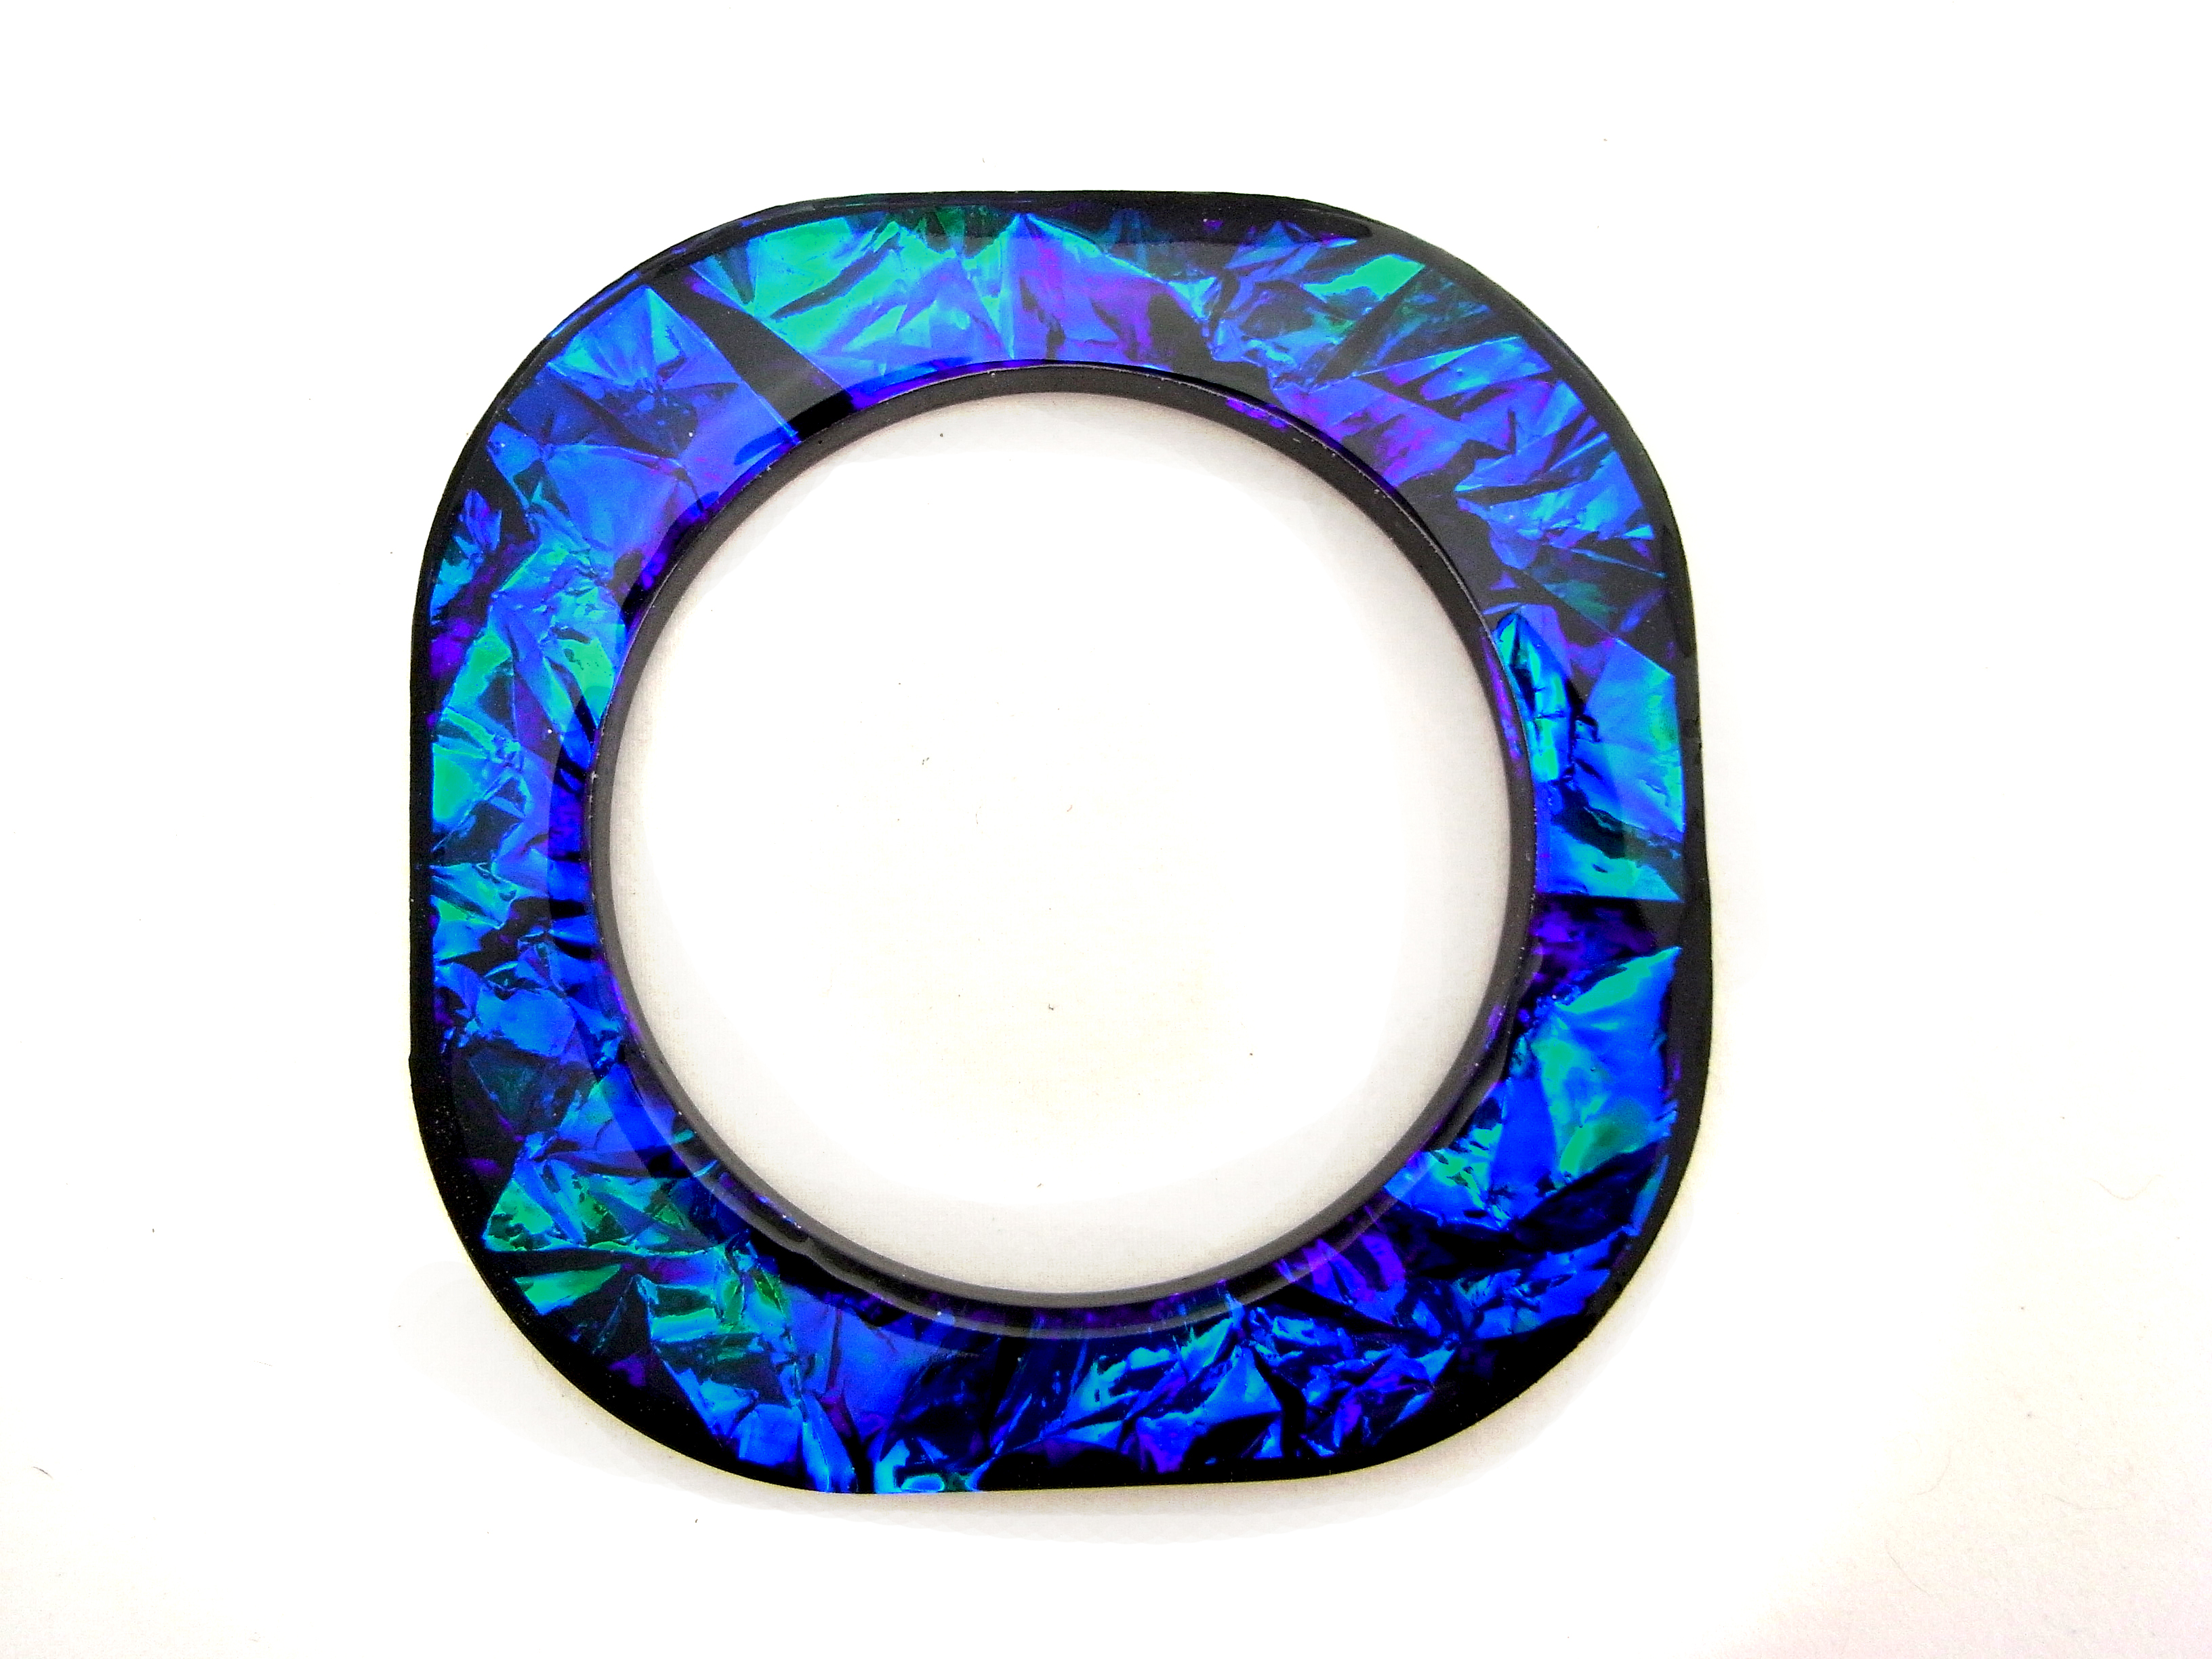 Iridescent square bangle with rounded corners in shimmering shades of blue, green and purple